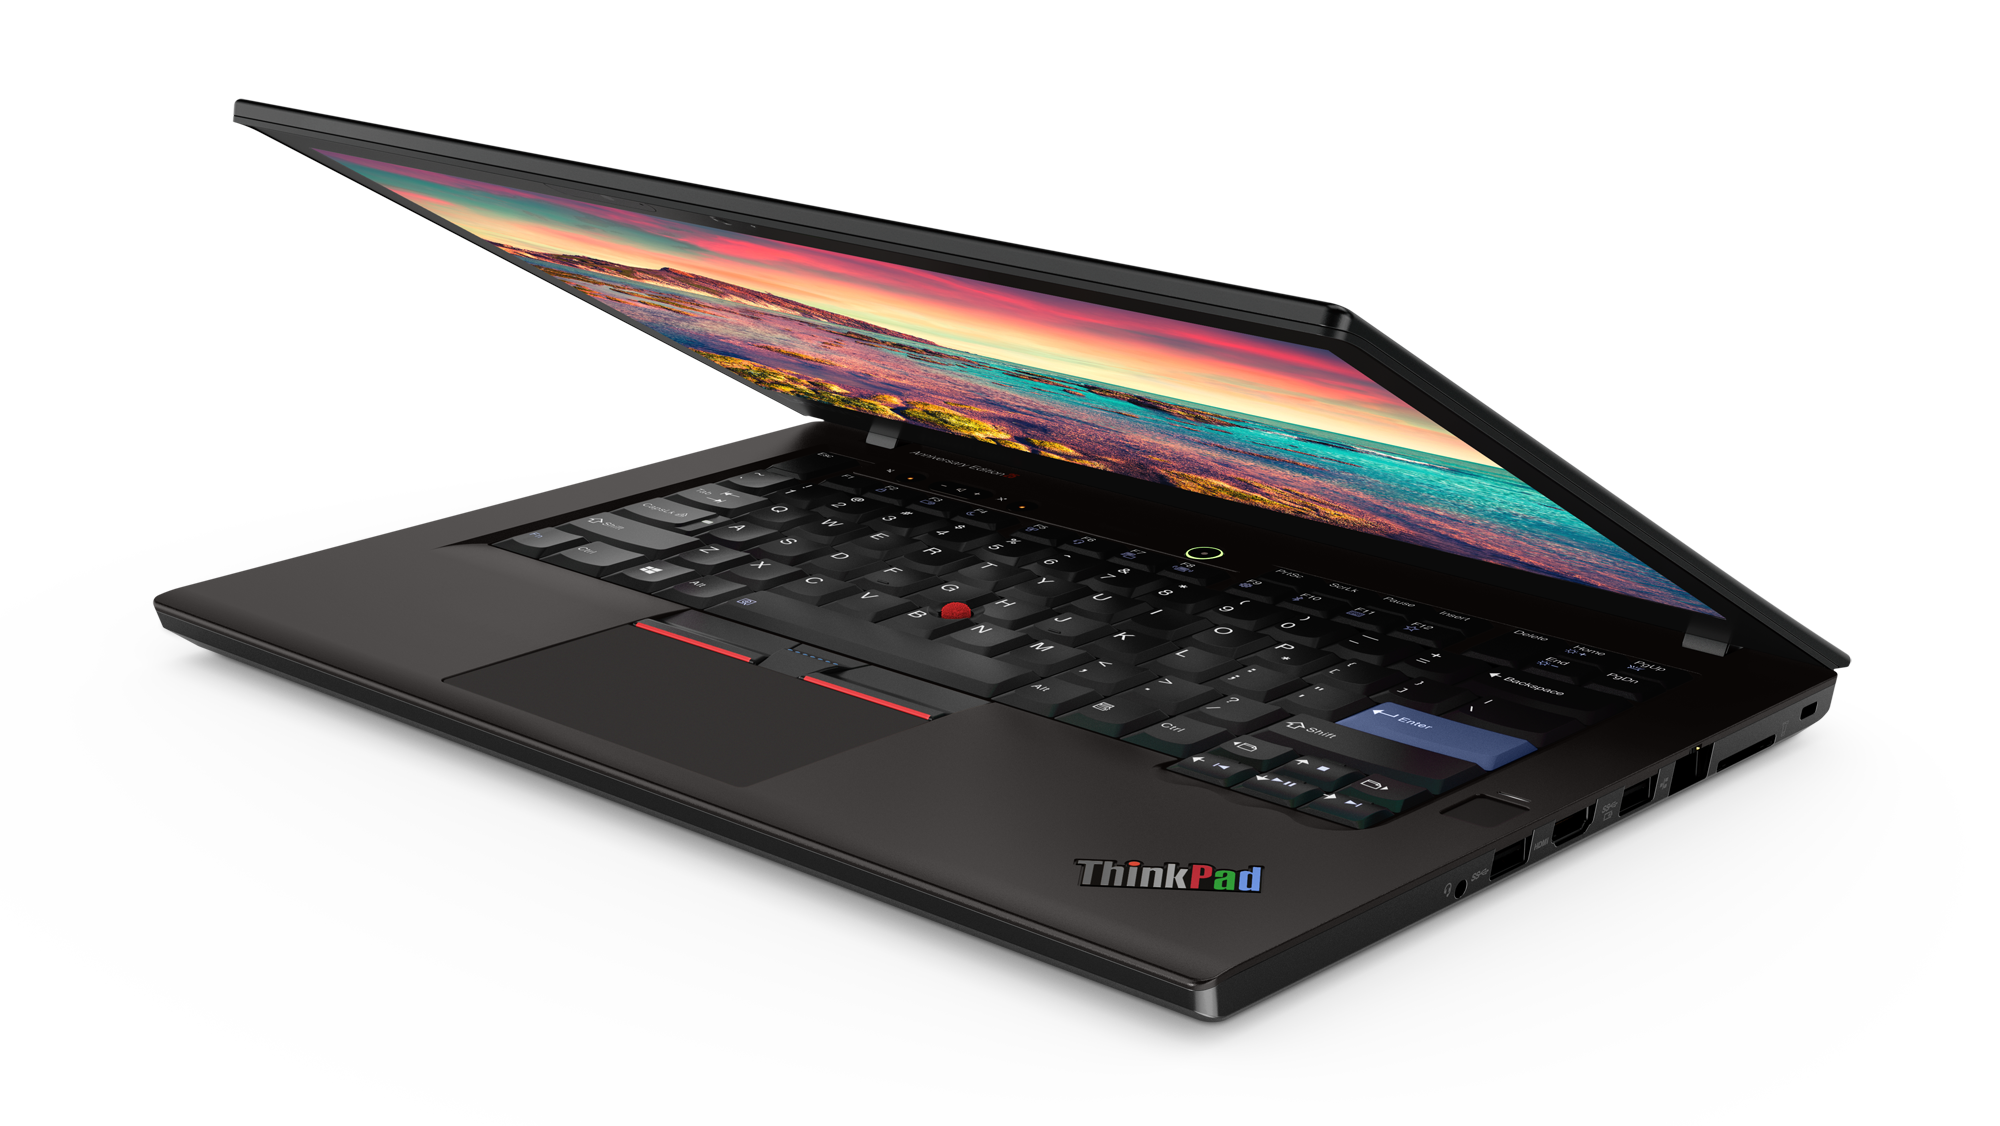 Celebrate 25 years of ThinkPad with the ThinkPad Anniversary Edition 25